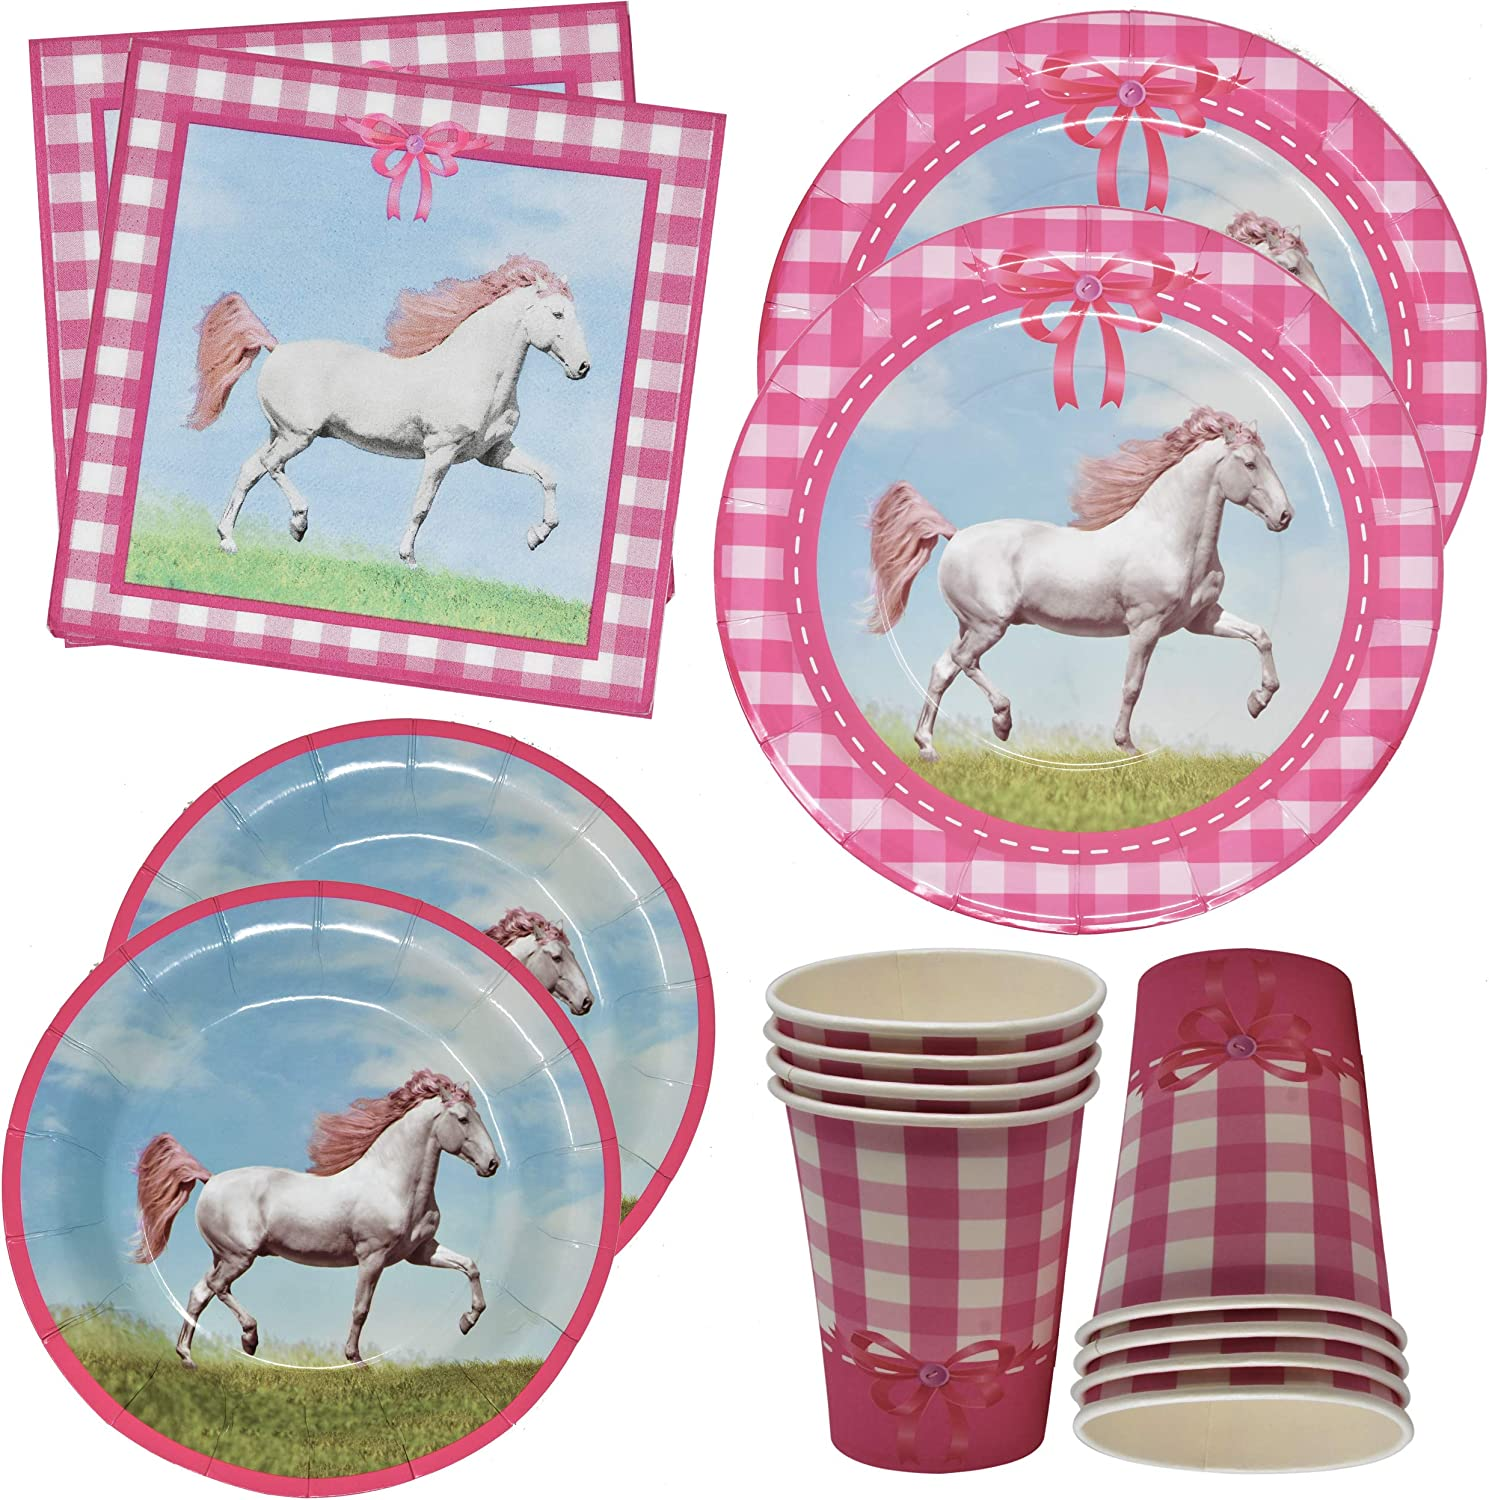 """Horse Birthday Party Supplies Includes 24 9"""" Plates 24 7"""" Plates 24 9 Oz Cups 50 Lunch Napkins for Cowgirl Decorations Girls Pink Riding Pony Theme Wester Themed Decoration"""